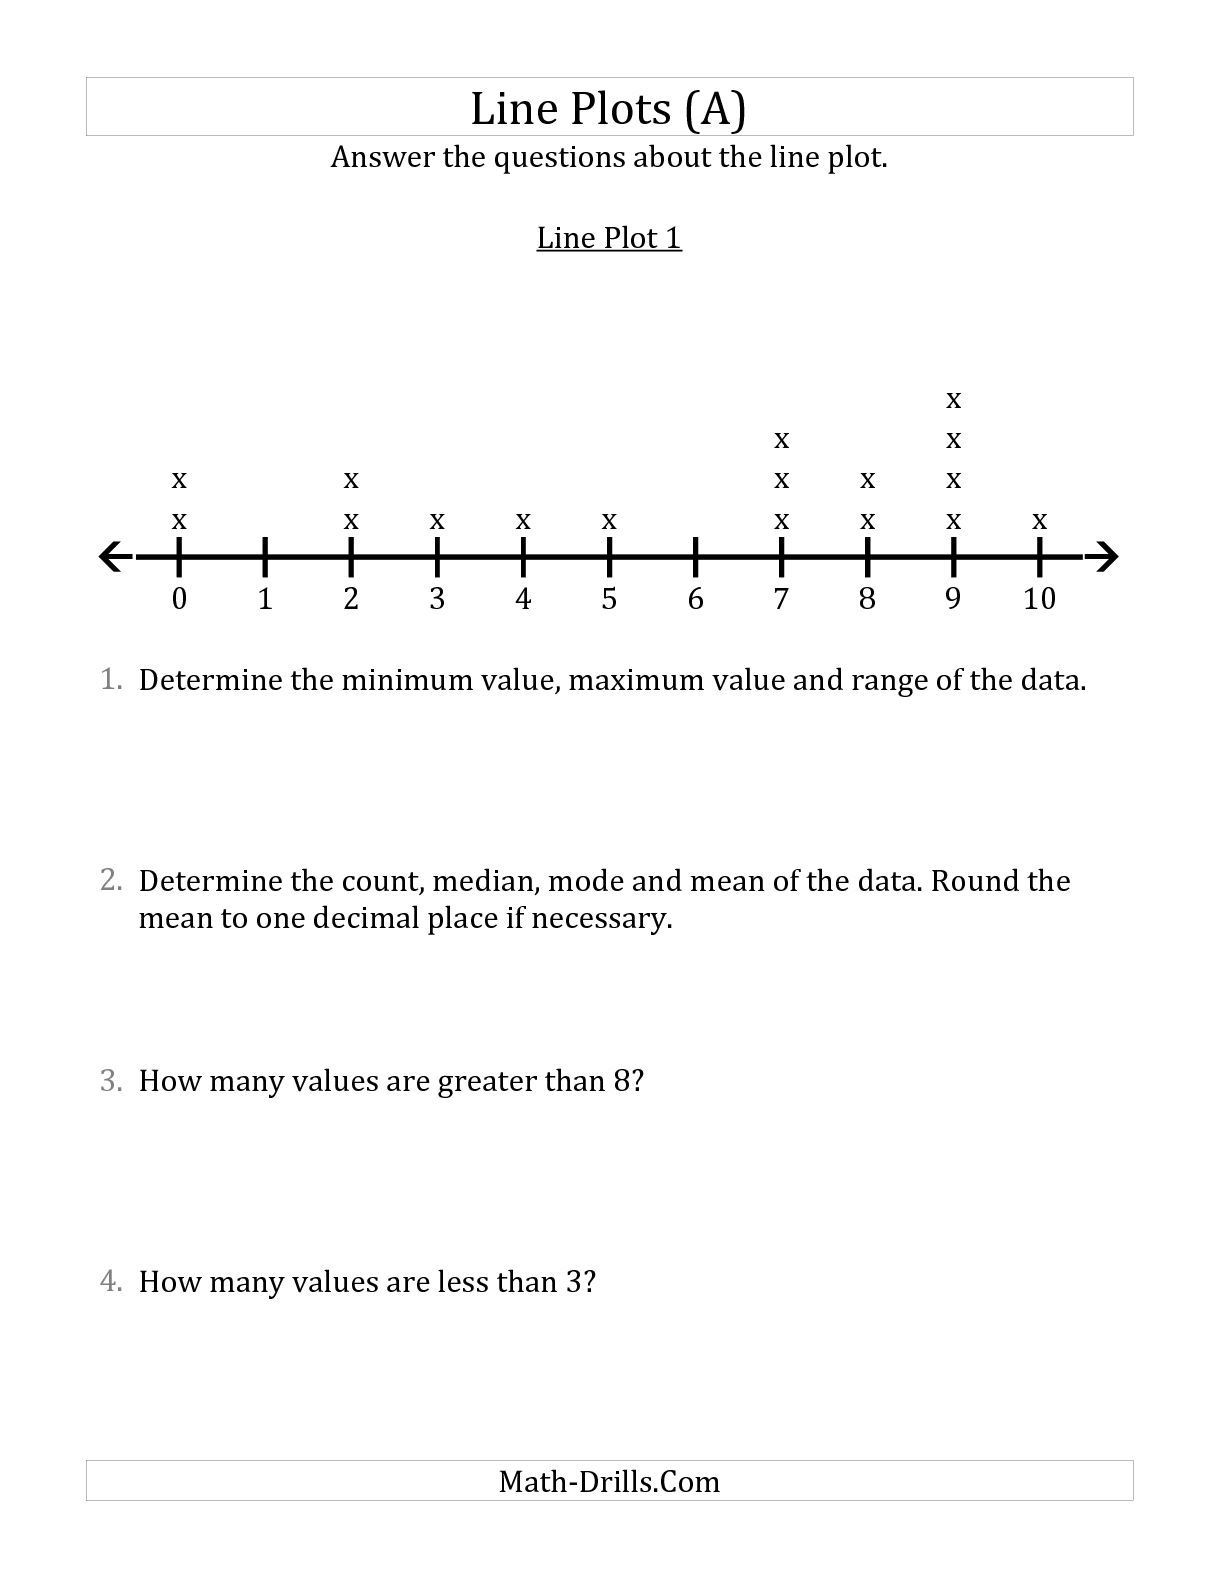 Line Graph Worksheets 5th Grade the Questions About Line Plots with Smaller Data Sets and